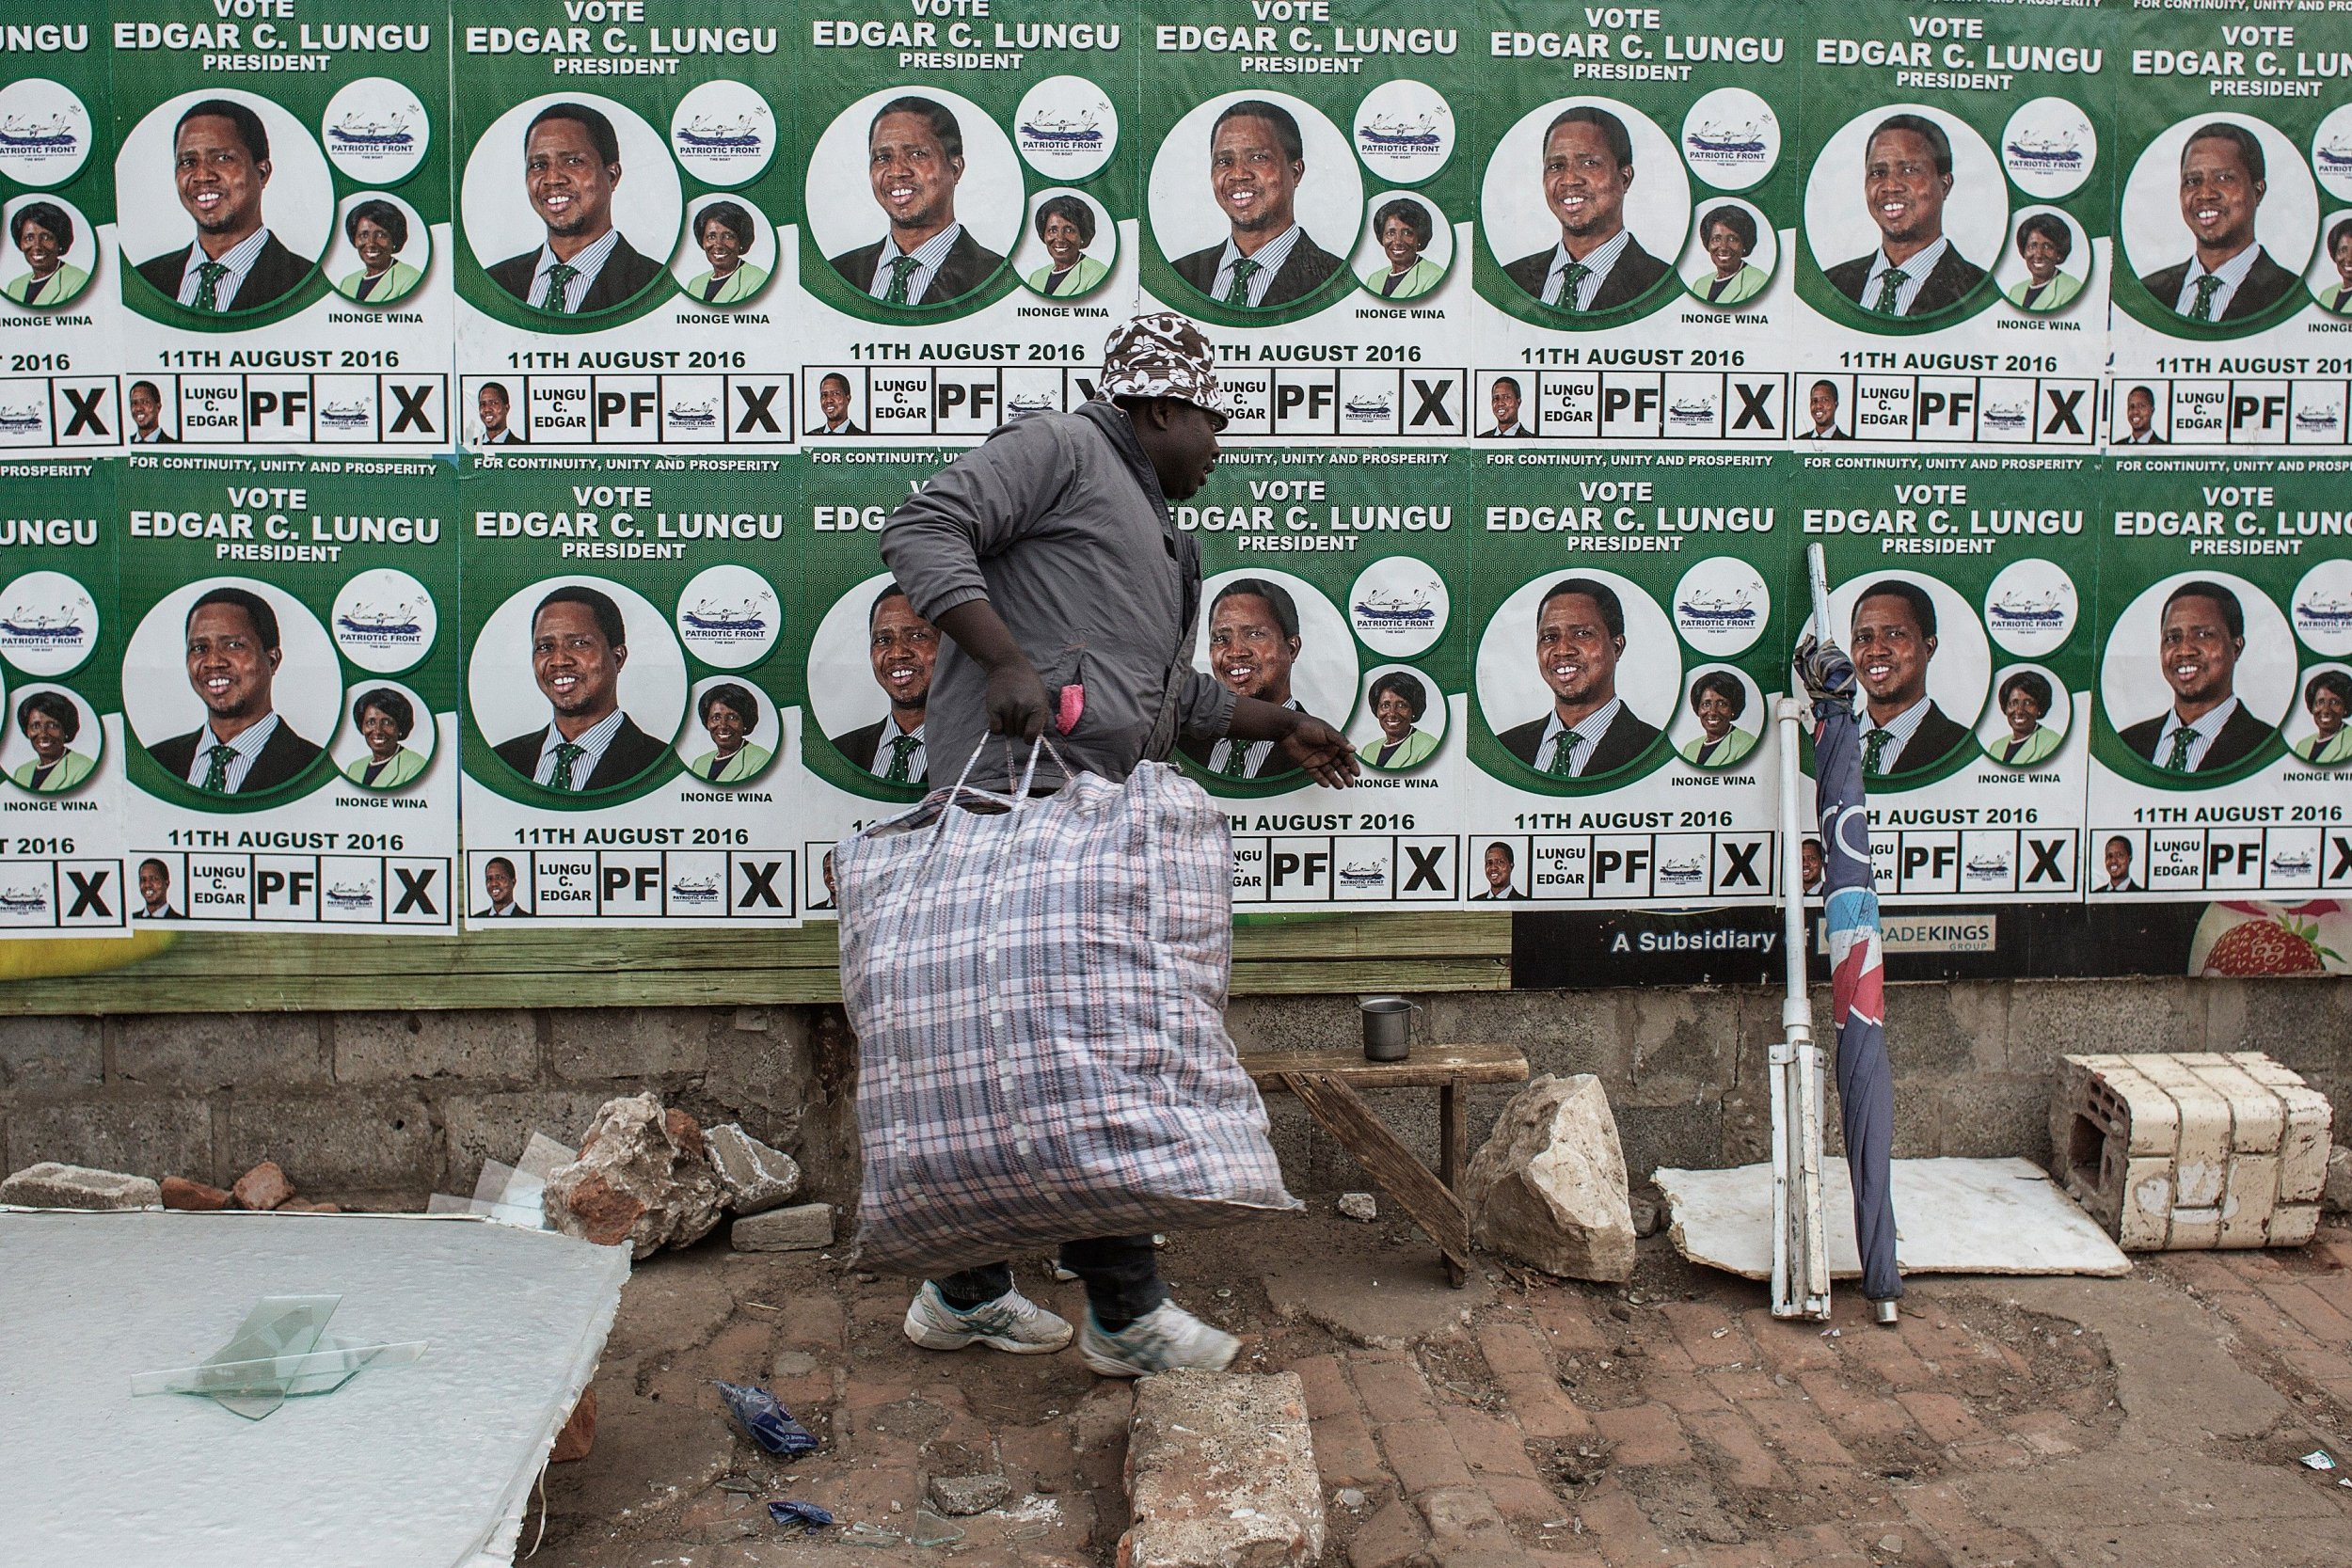 Edgar Lungu billboard